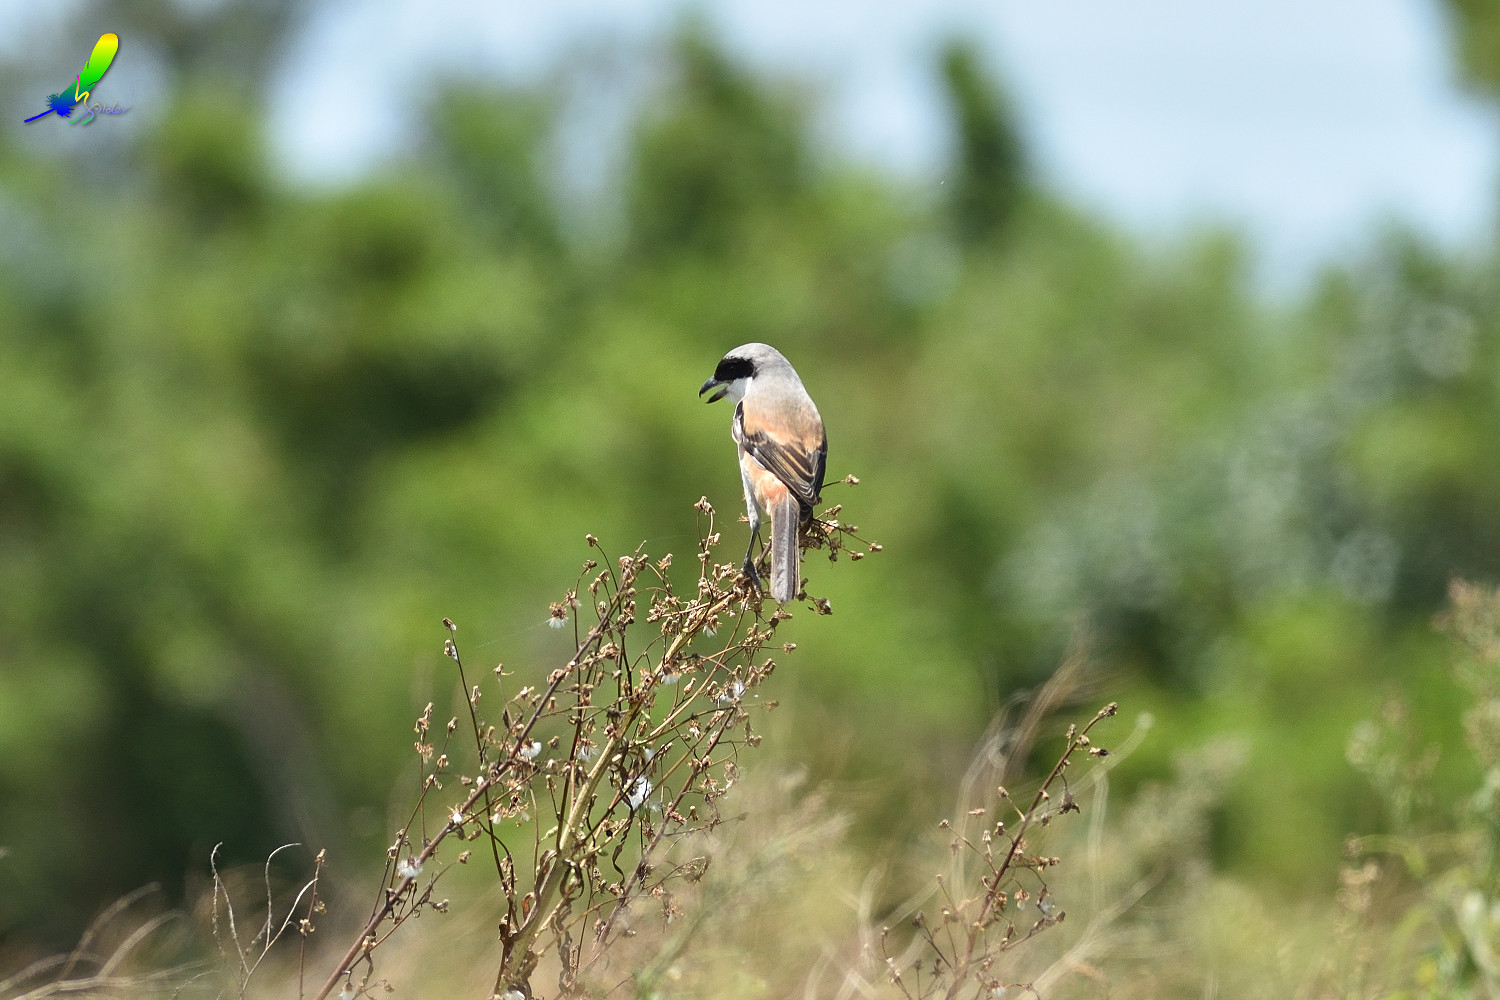 Long-tailed_Shrike_8579